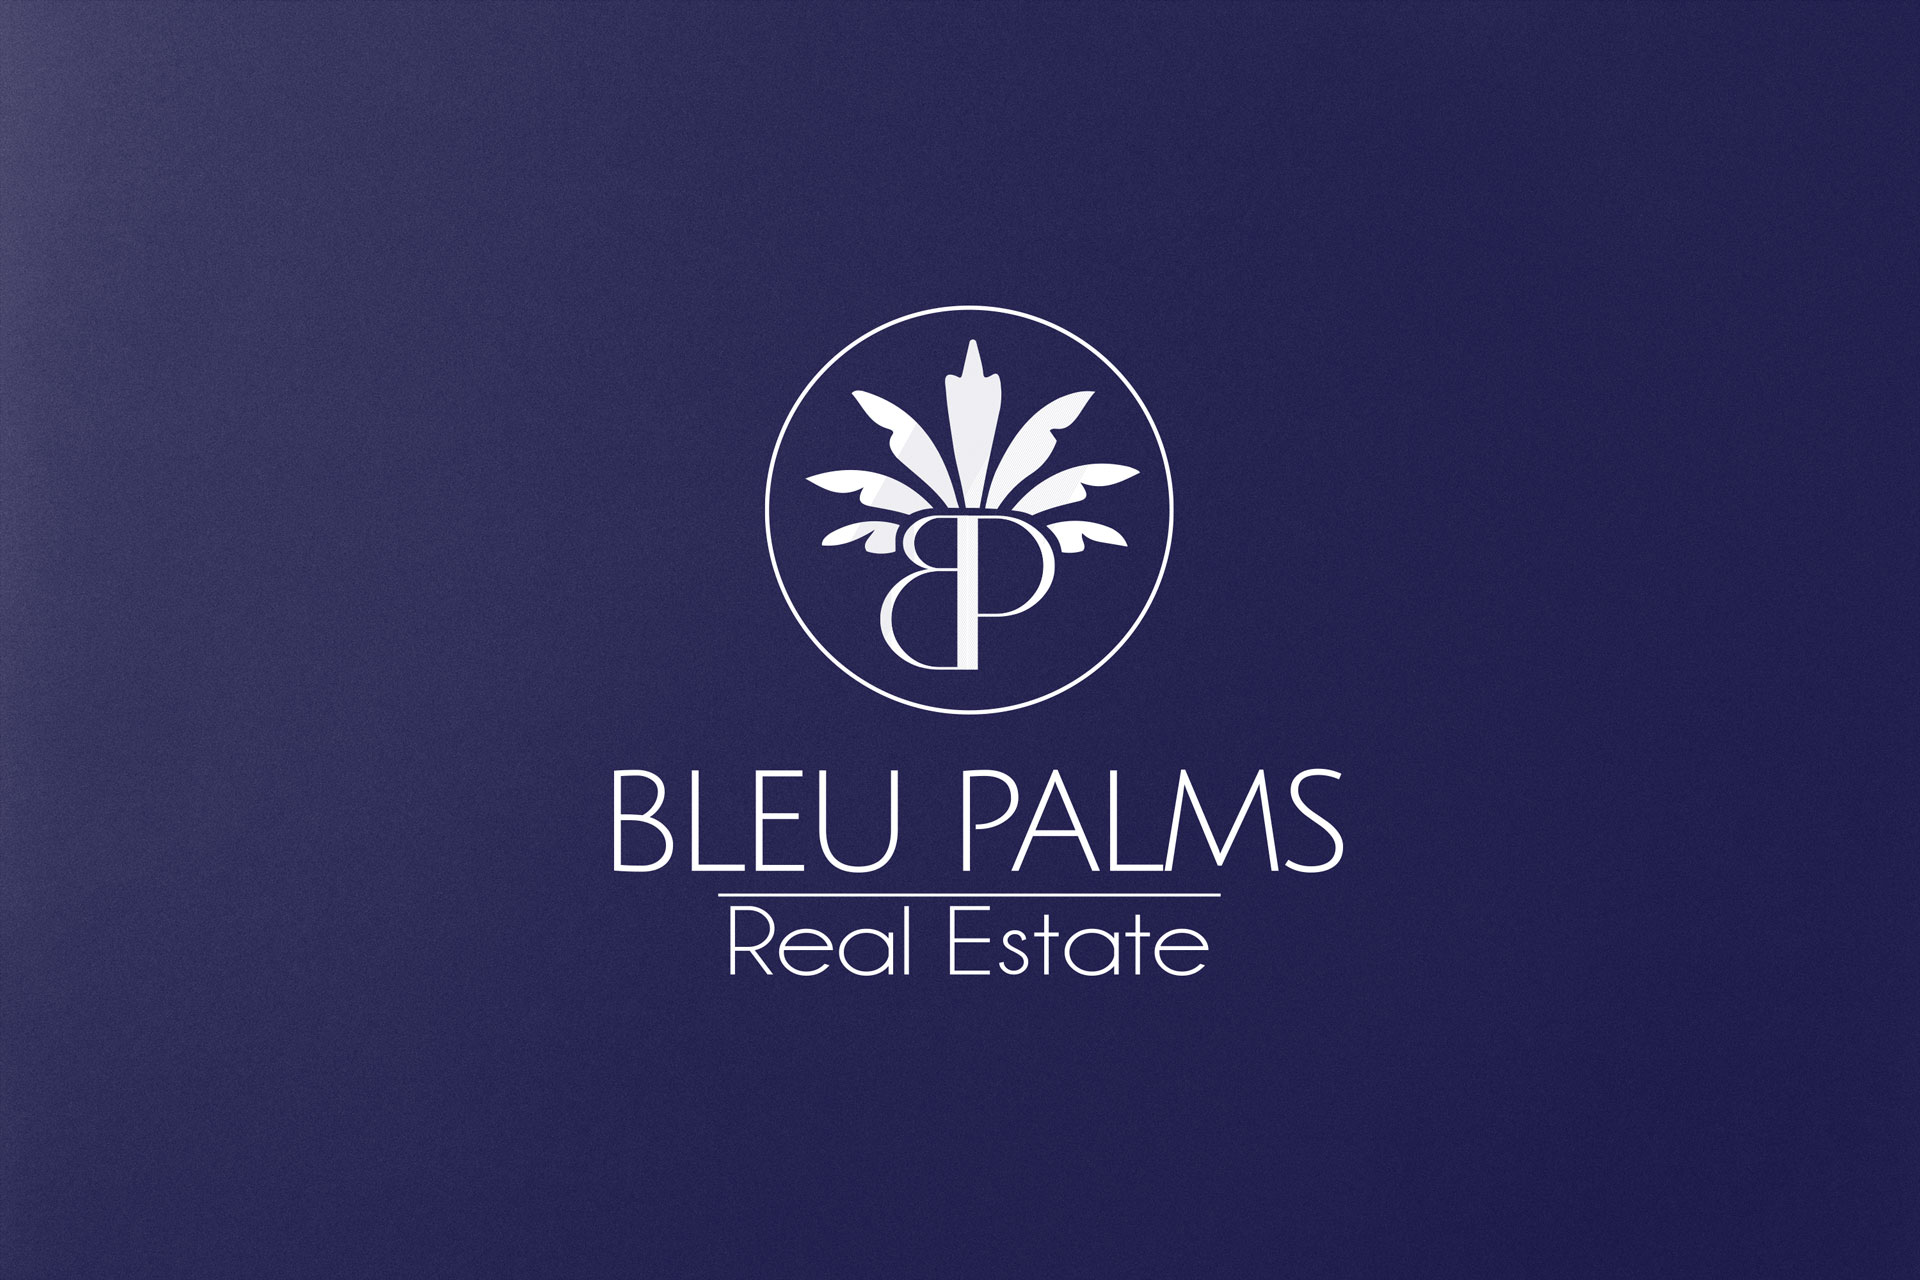 Bleu Palms Real Estate logo design West Palm Beach